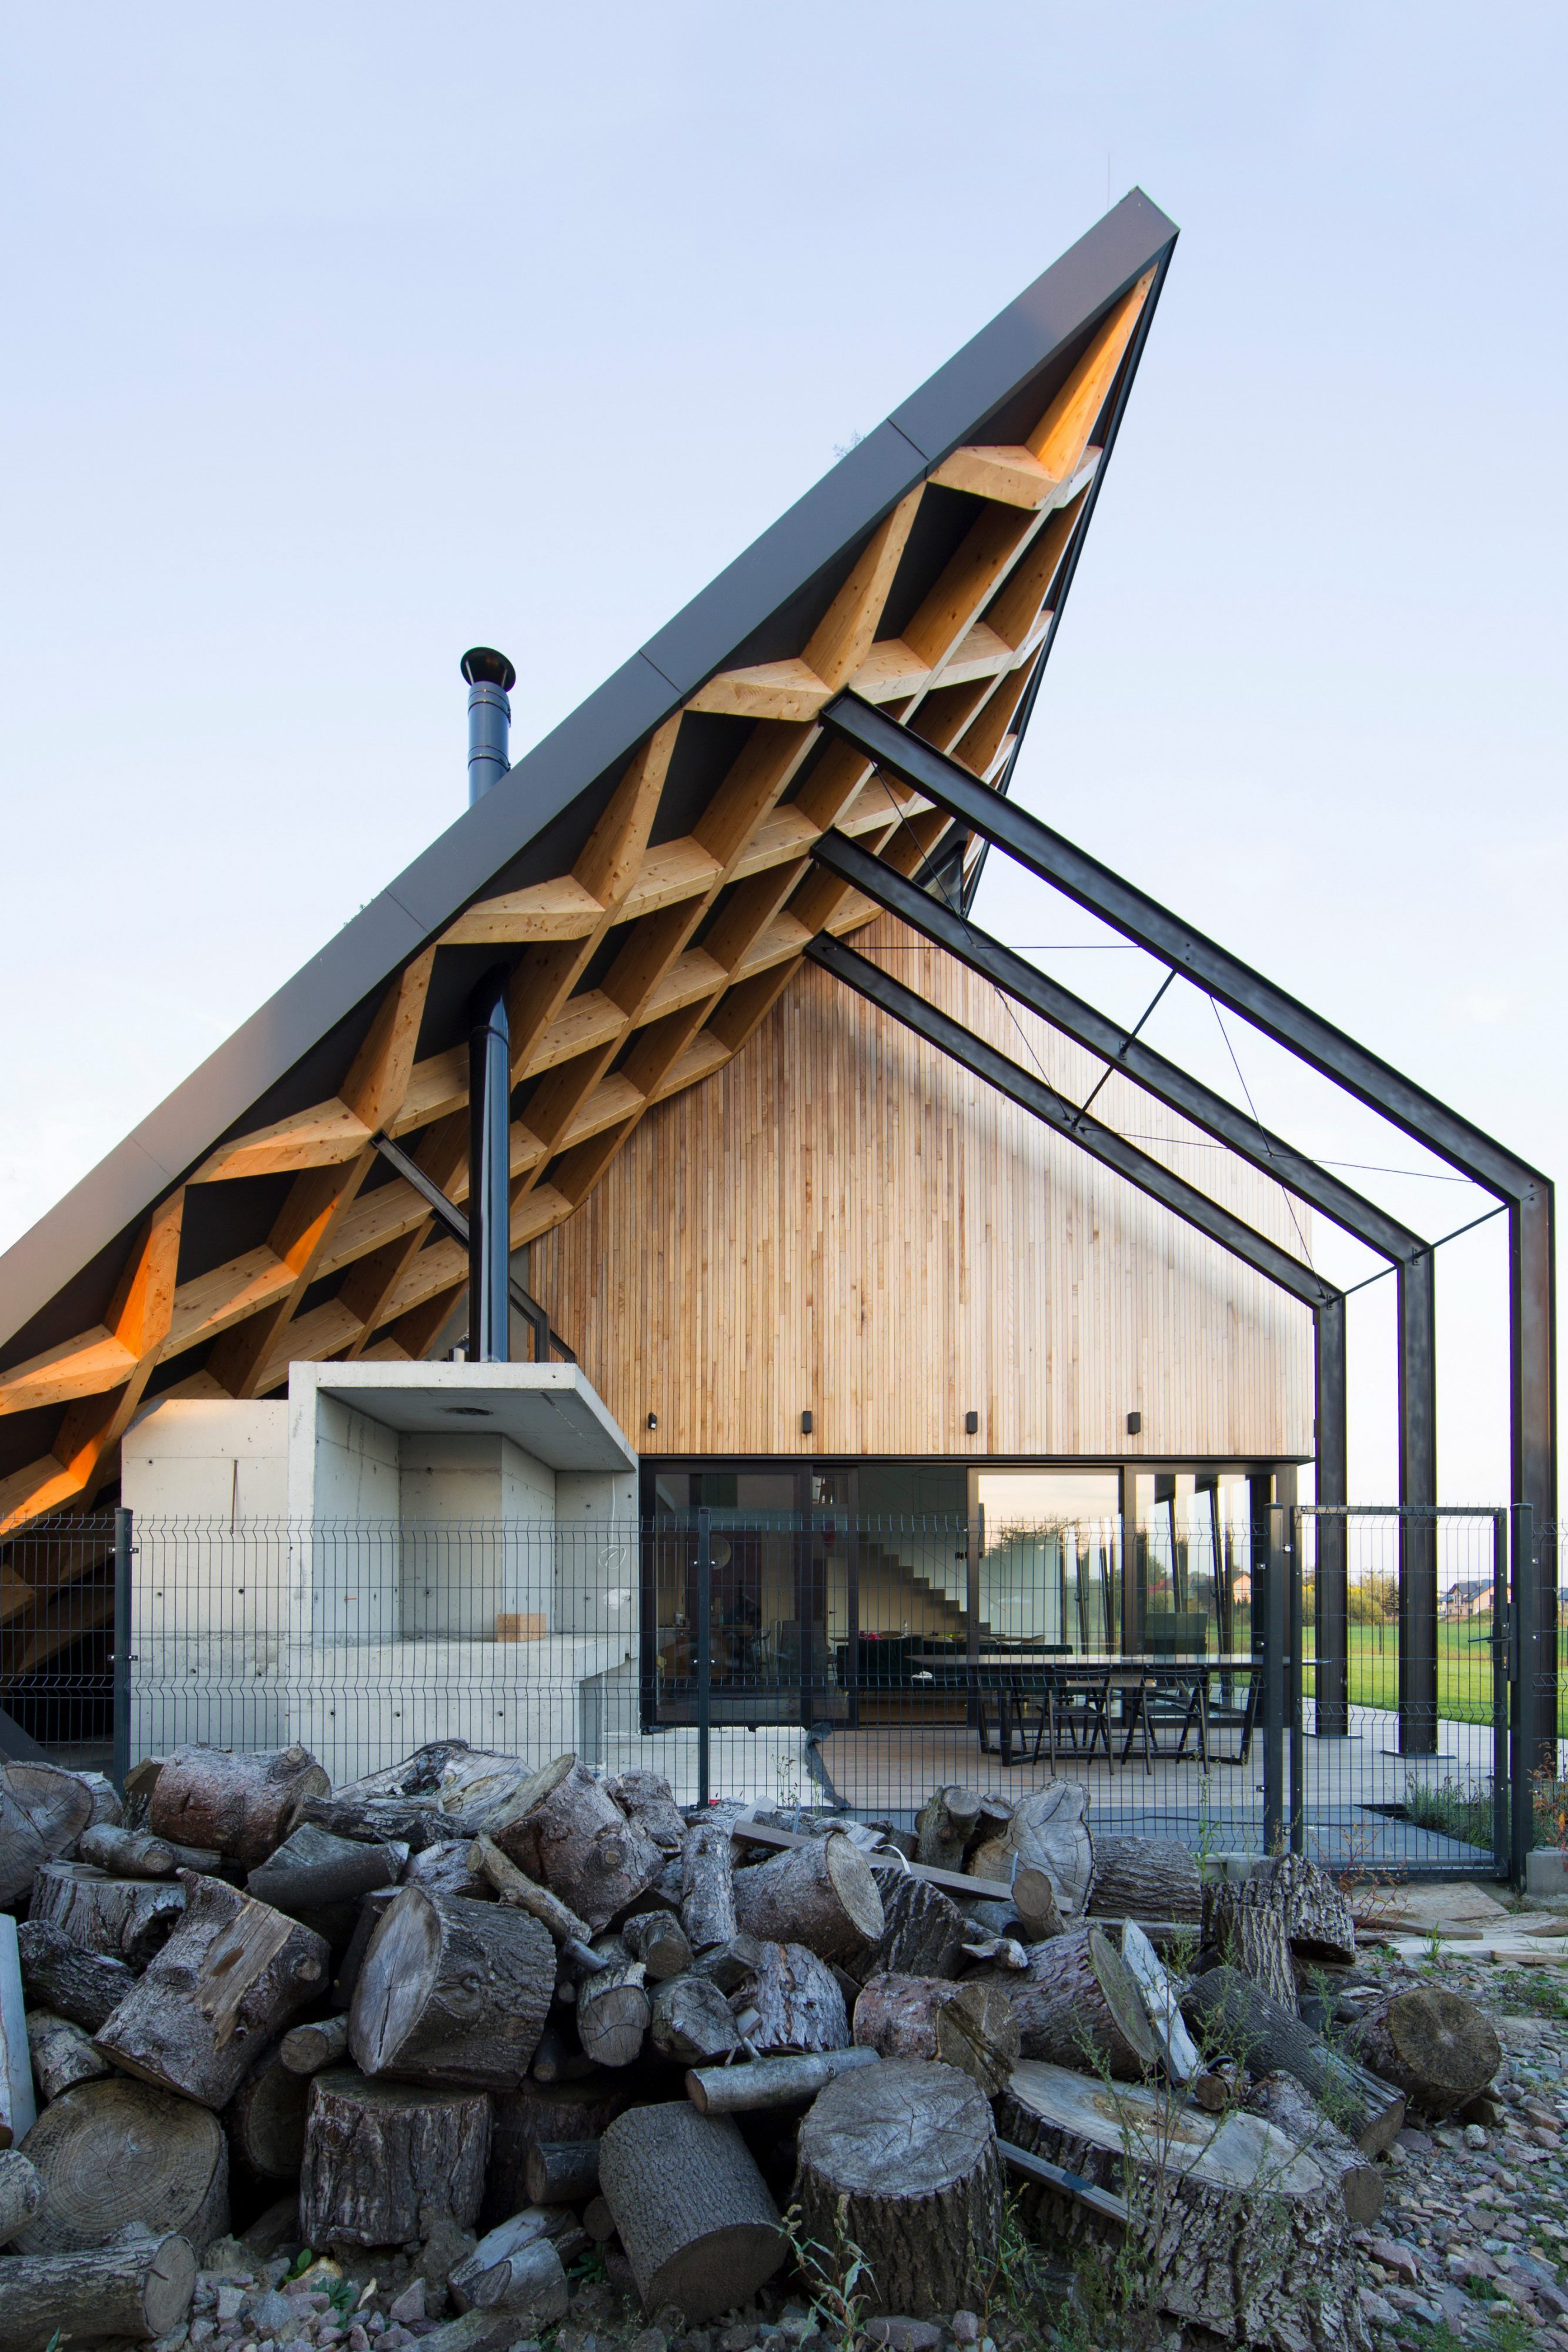 House Behind The Roof by Superhelix Pracownia Projektowa